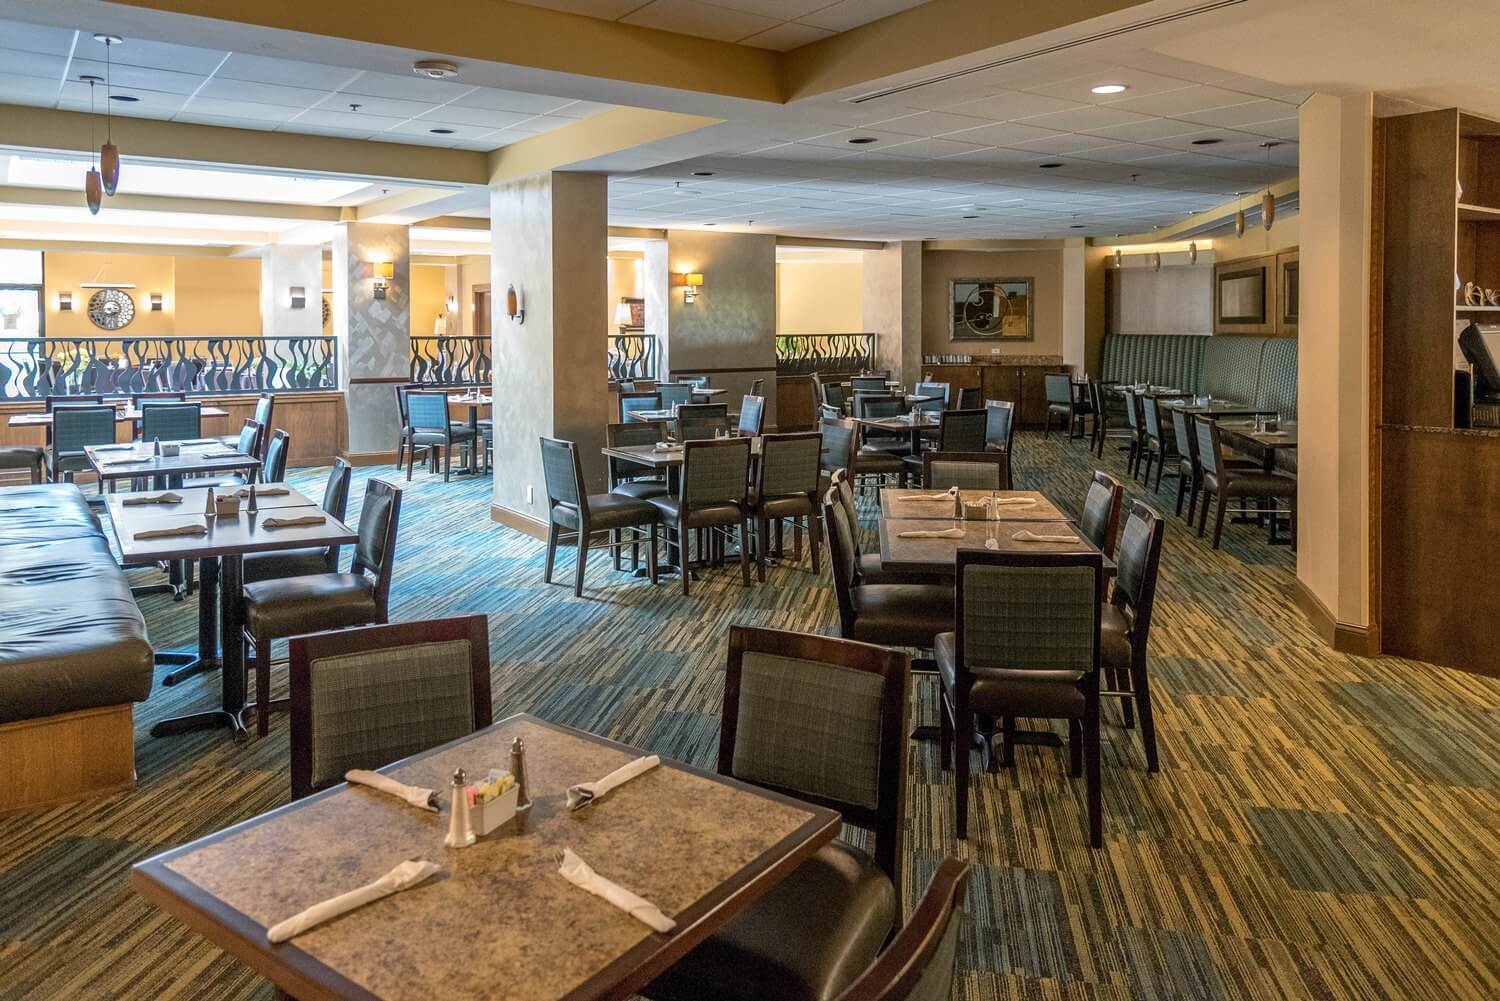 The Evergreen Cafe and Lounge at DoubleTree Suites by Hilton Orlando - Disney Springs / Walt Disney World Resort - Orlando Florida